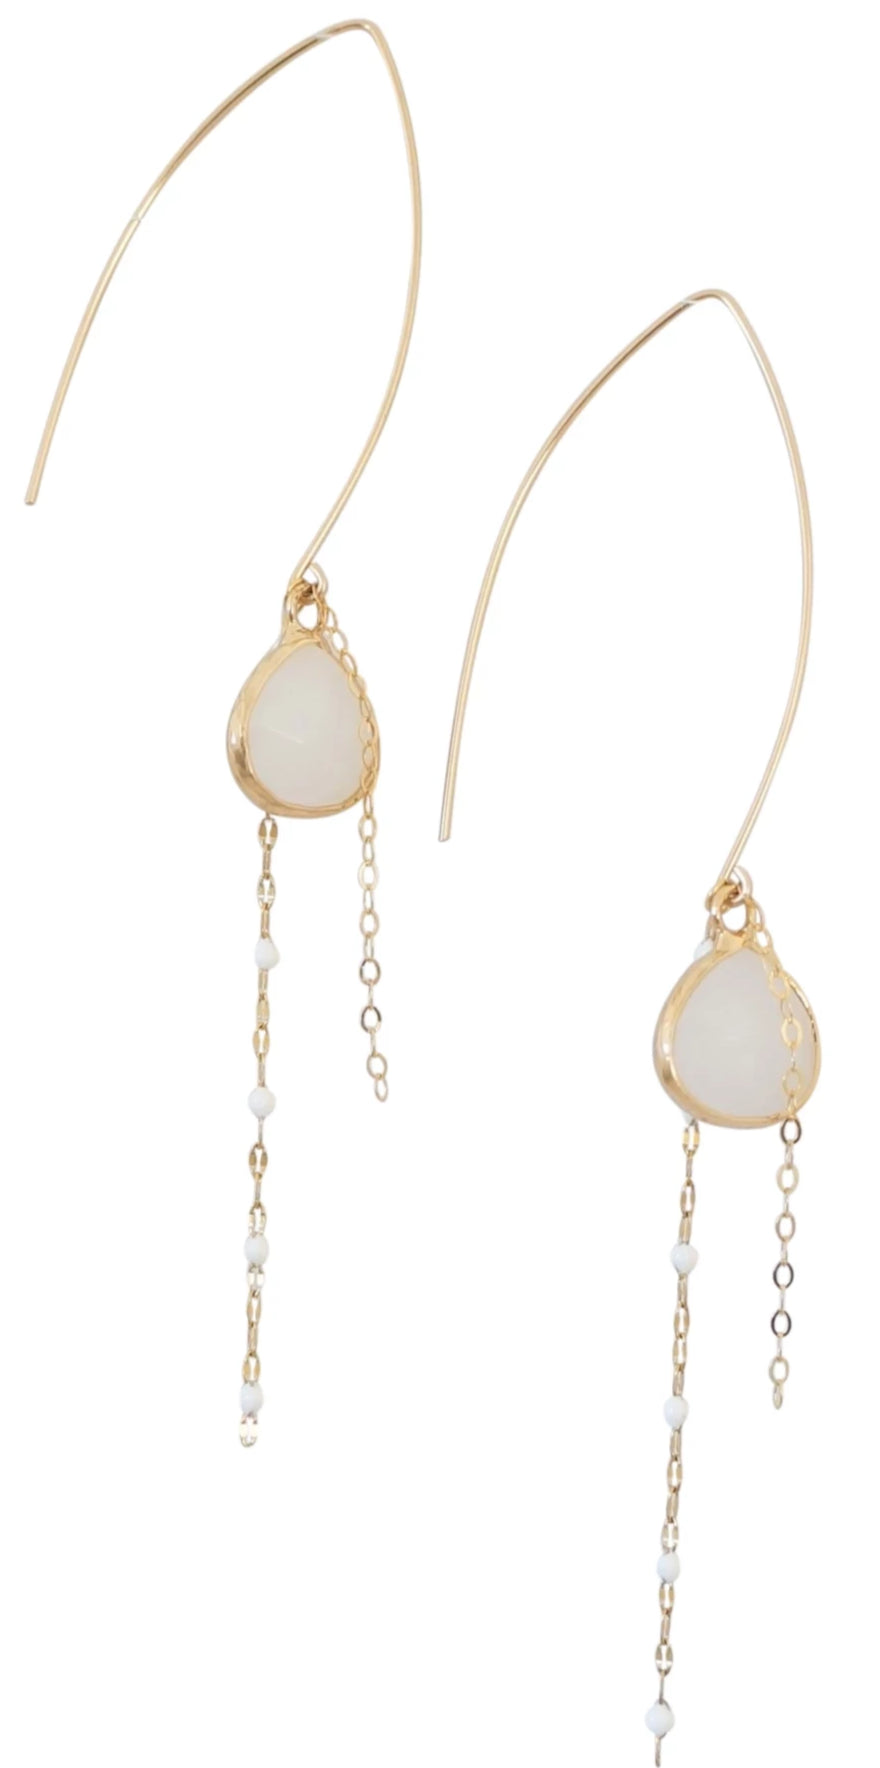 Enchanted Earrings - Carolyn Hearn Designs